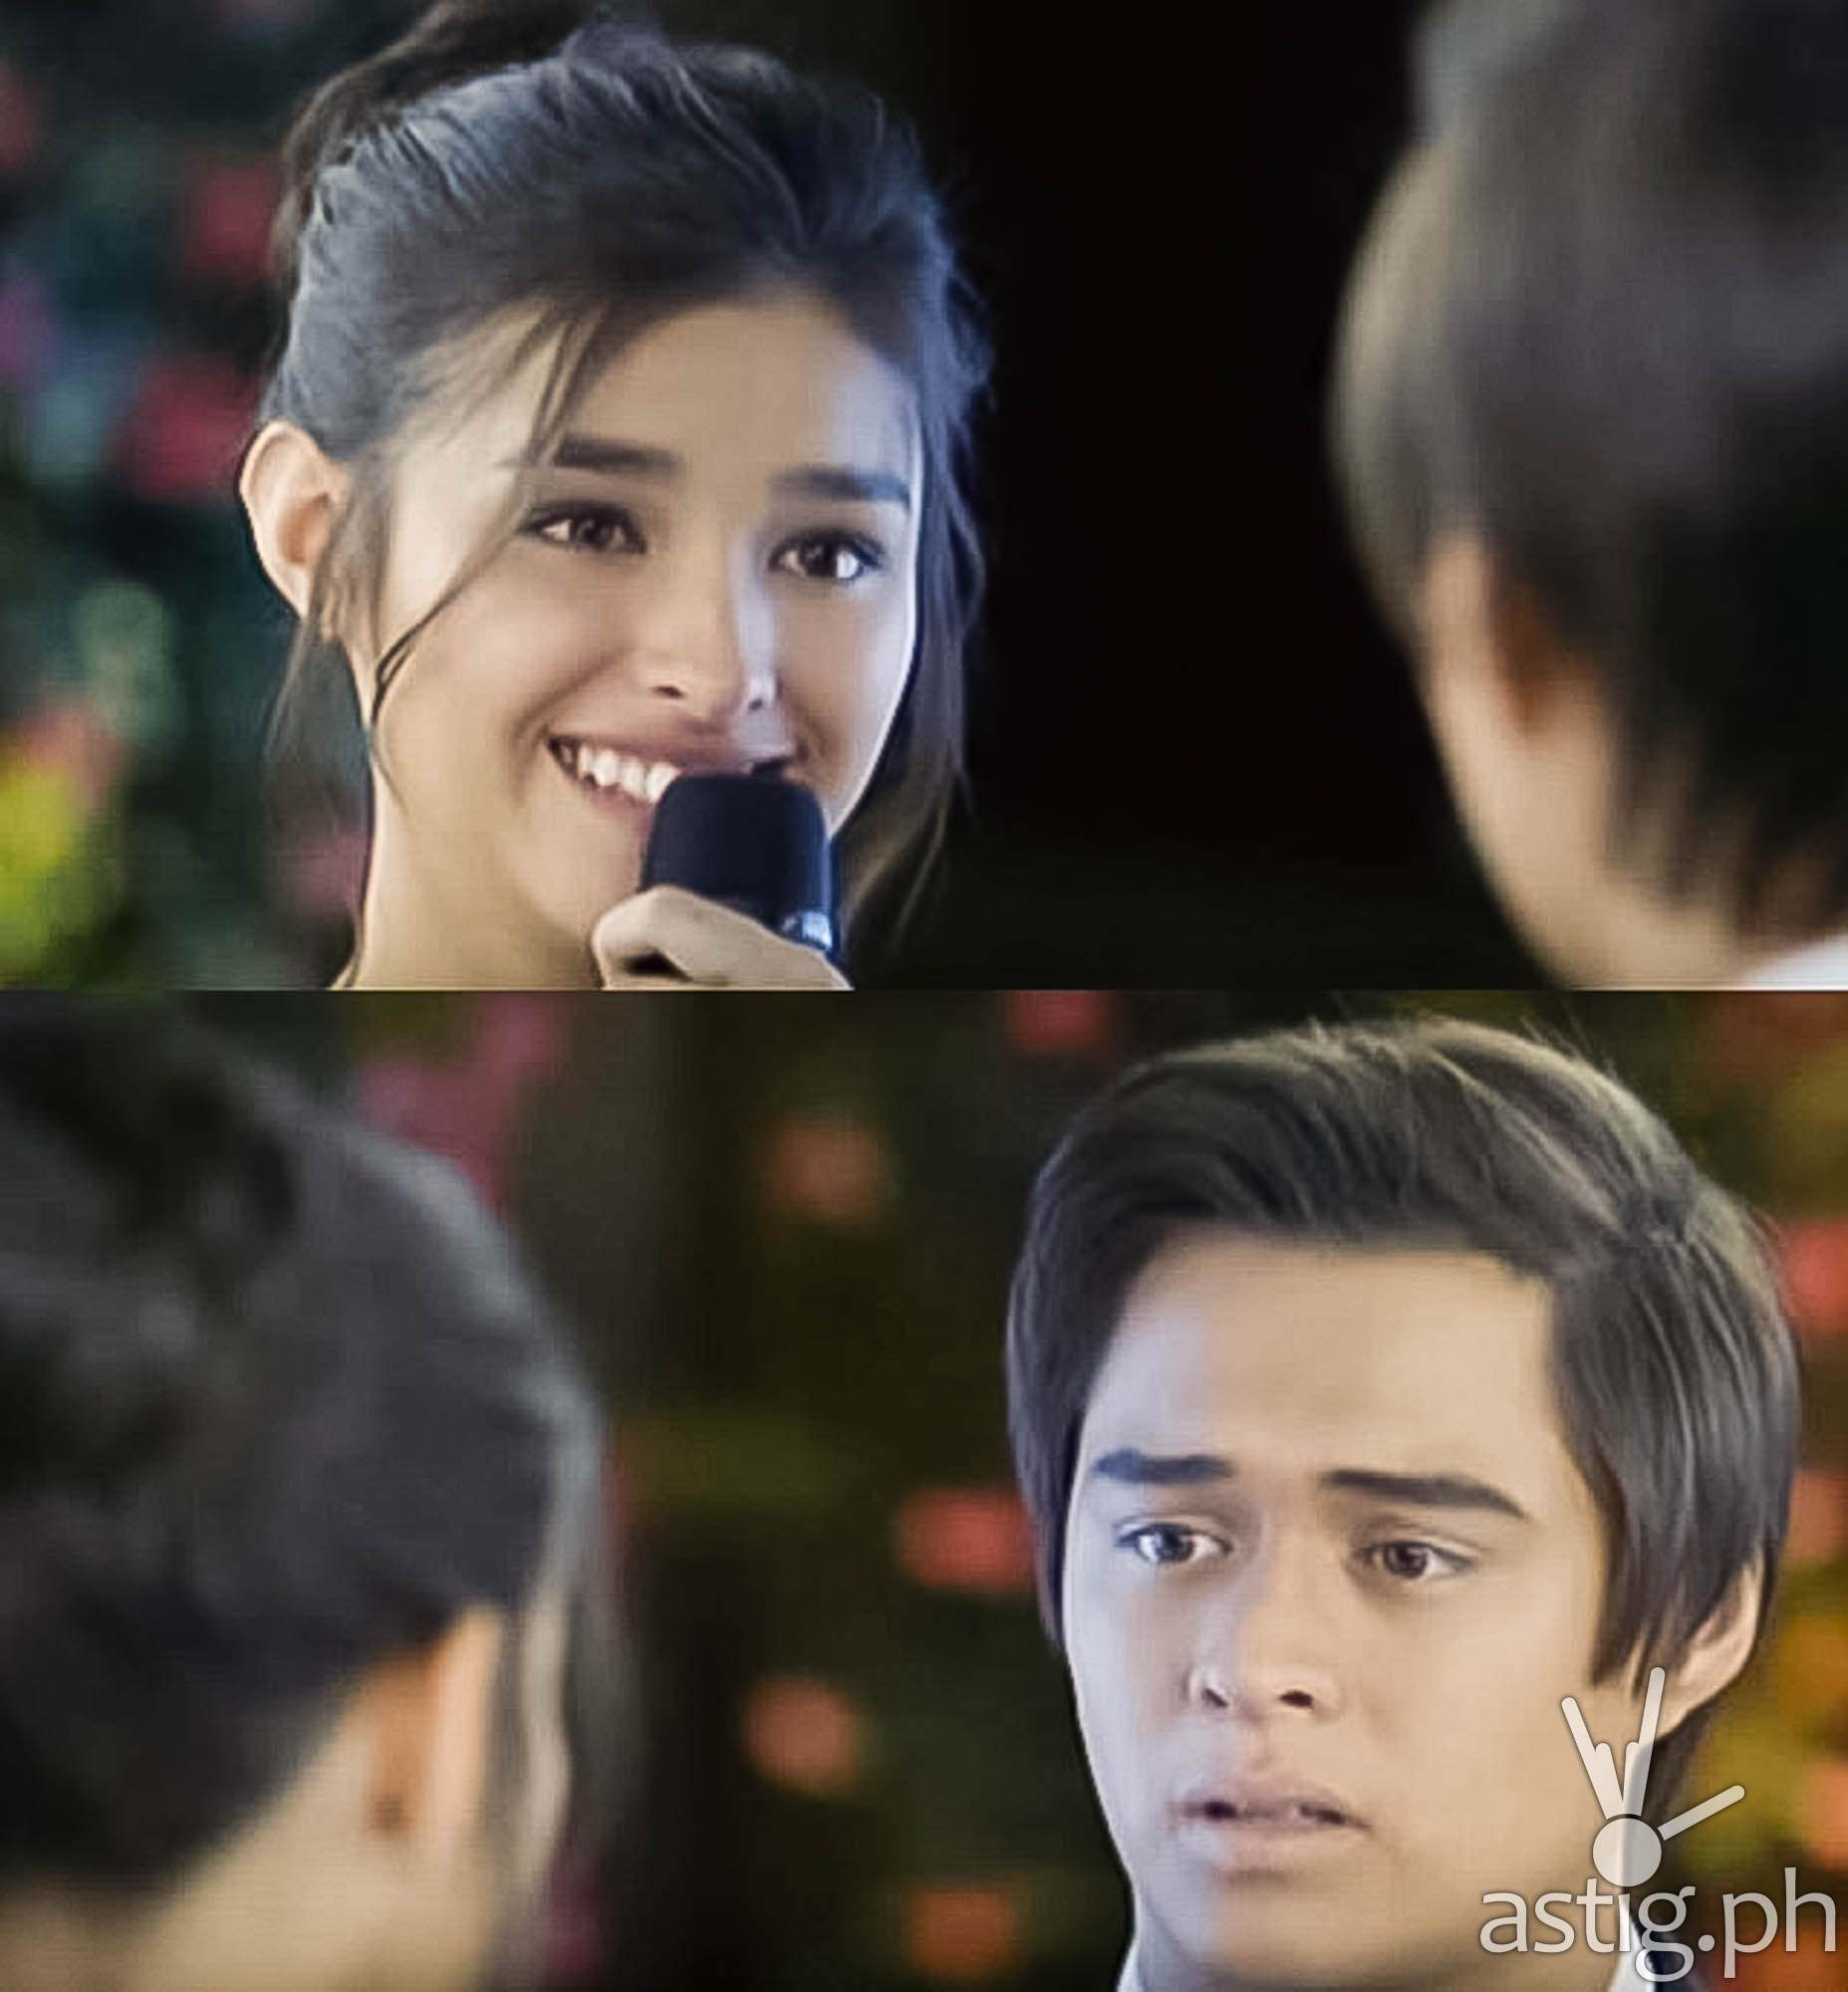 Serena says I love you to Tenten Dolce Amore